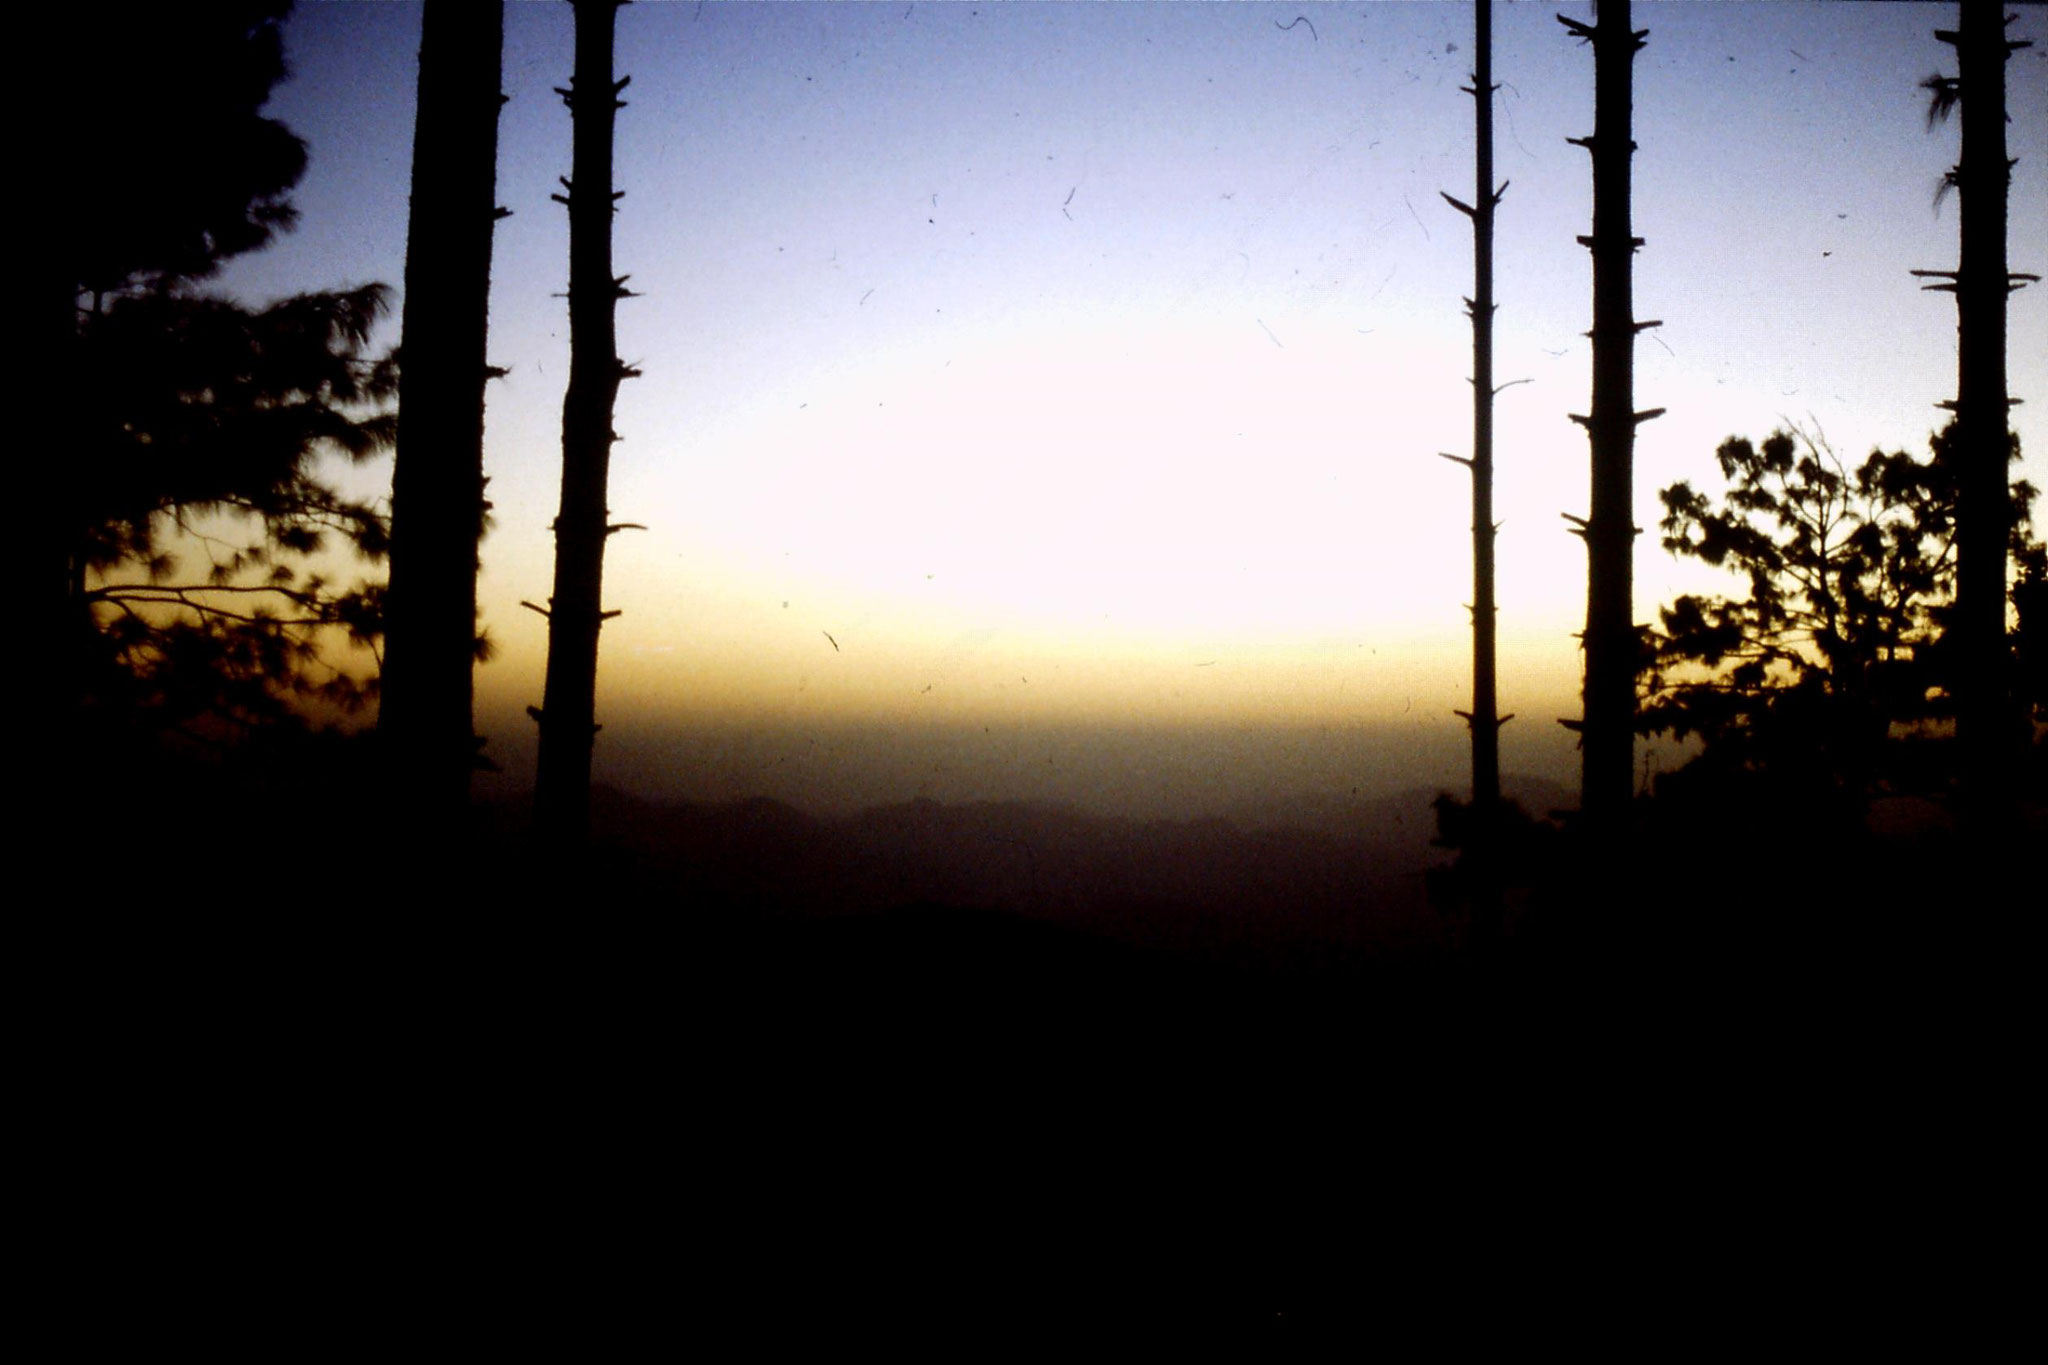 28/9/1989: 9: sunset in Murree